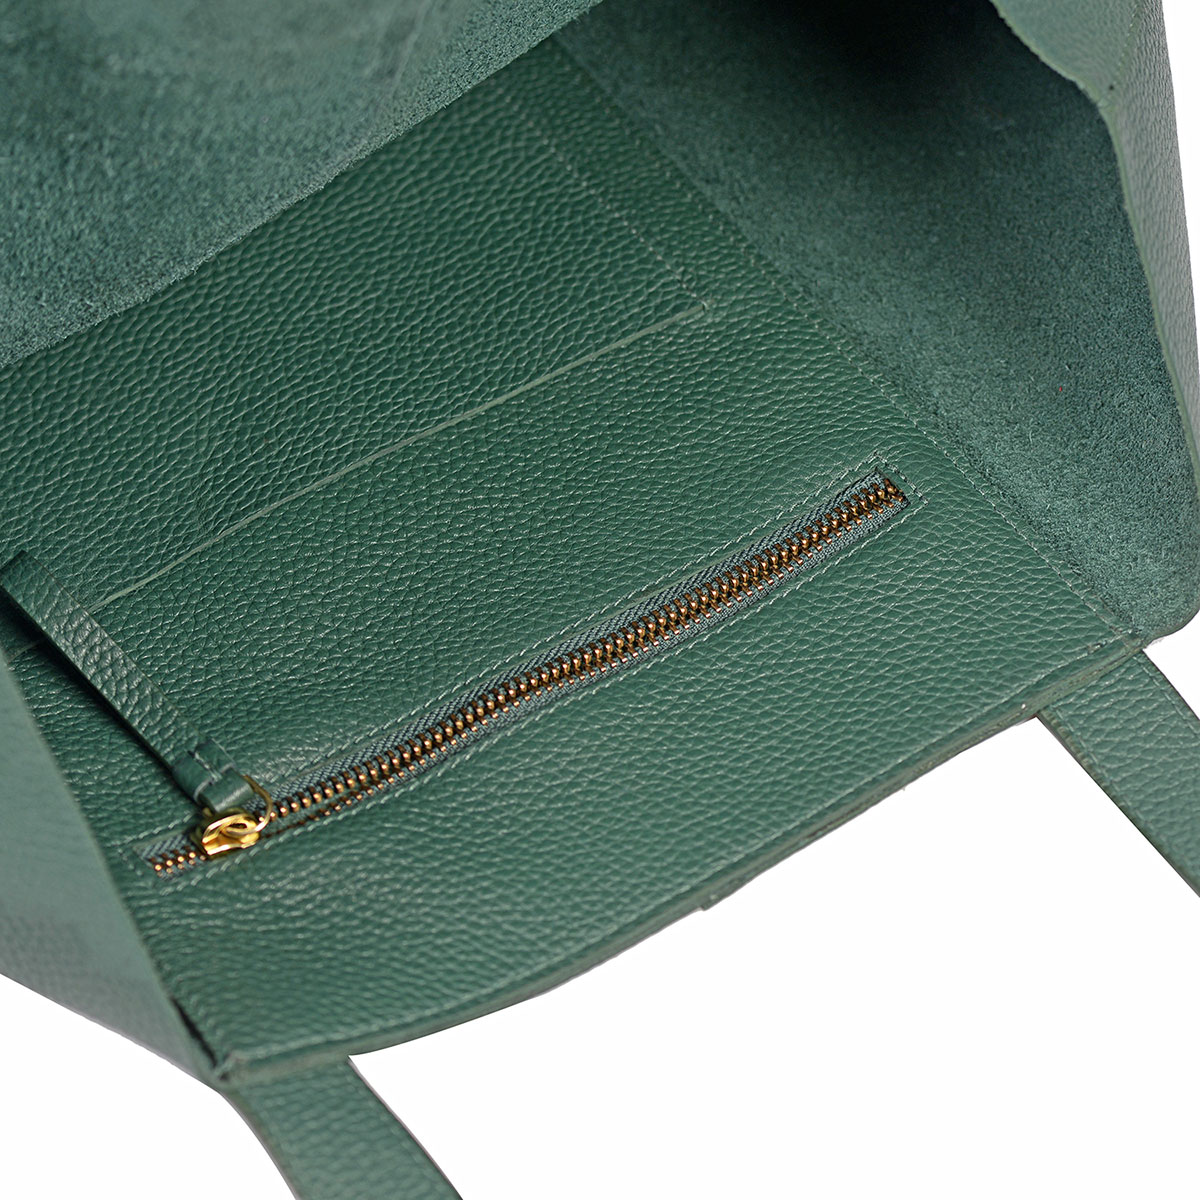 1b84f42212 ... Green Genuine Pebbled Leather Hobo Shoulder Bag with Standing Studs  (18x5x10 in)